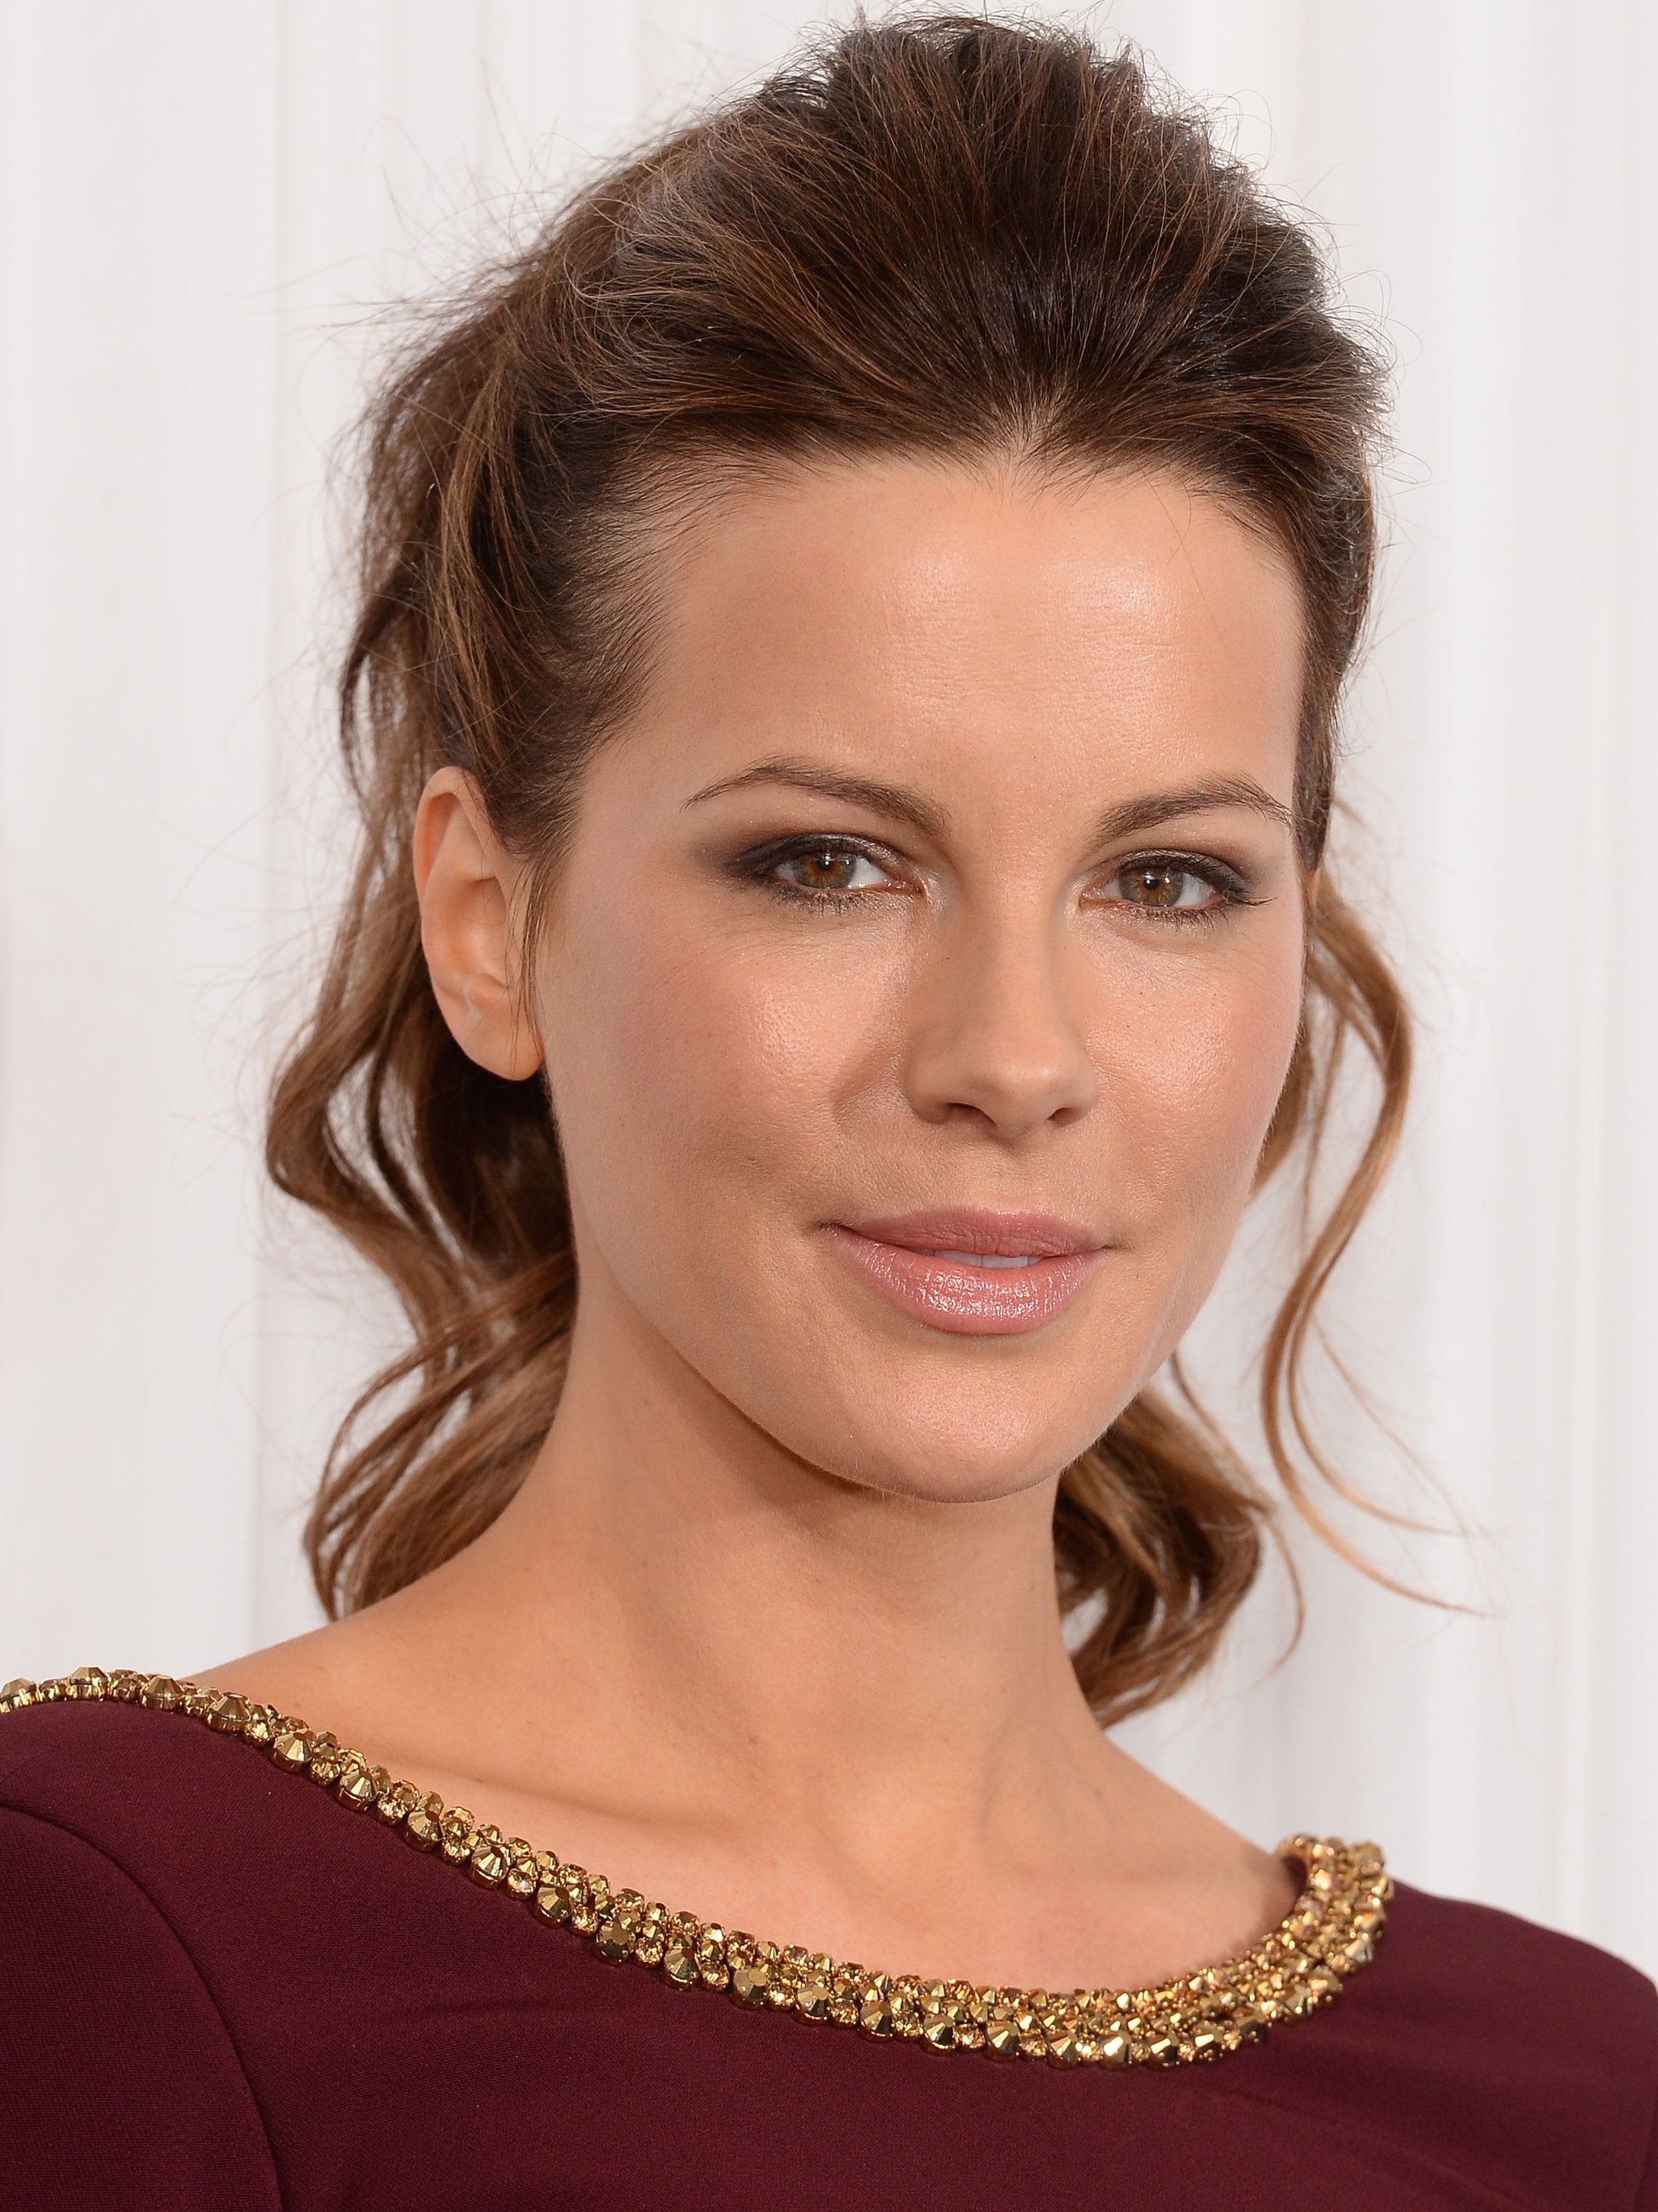 pictures Samantha Beckinsale (born 1966)